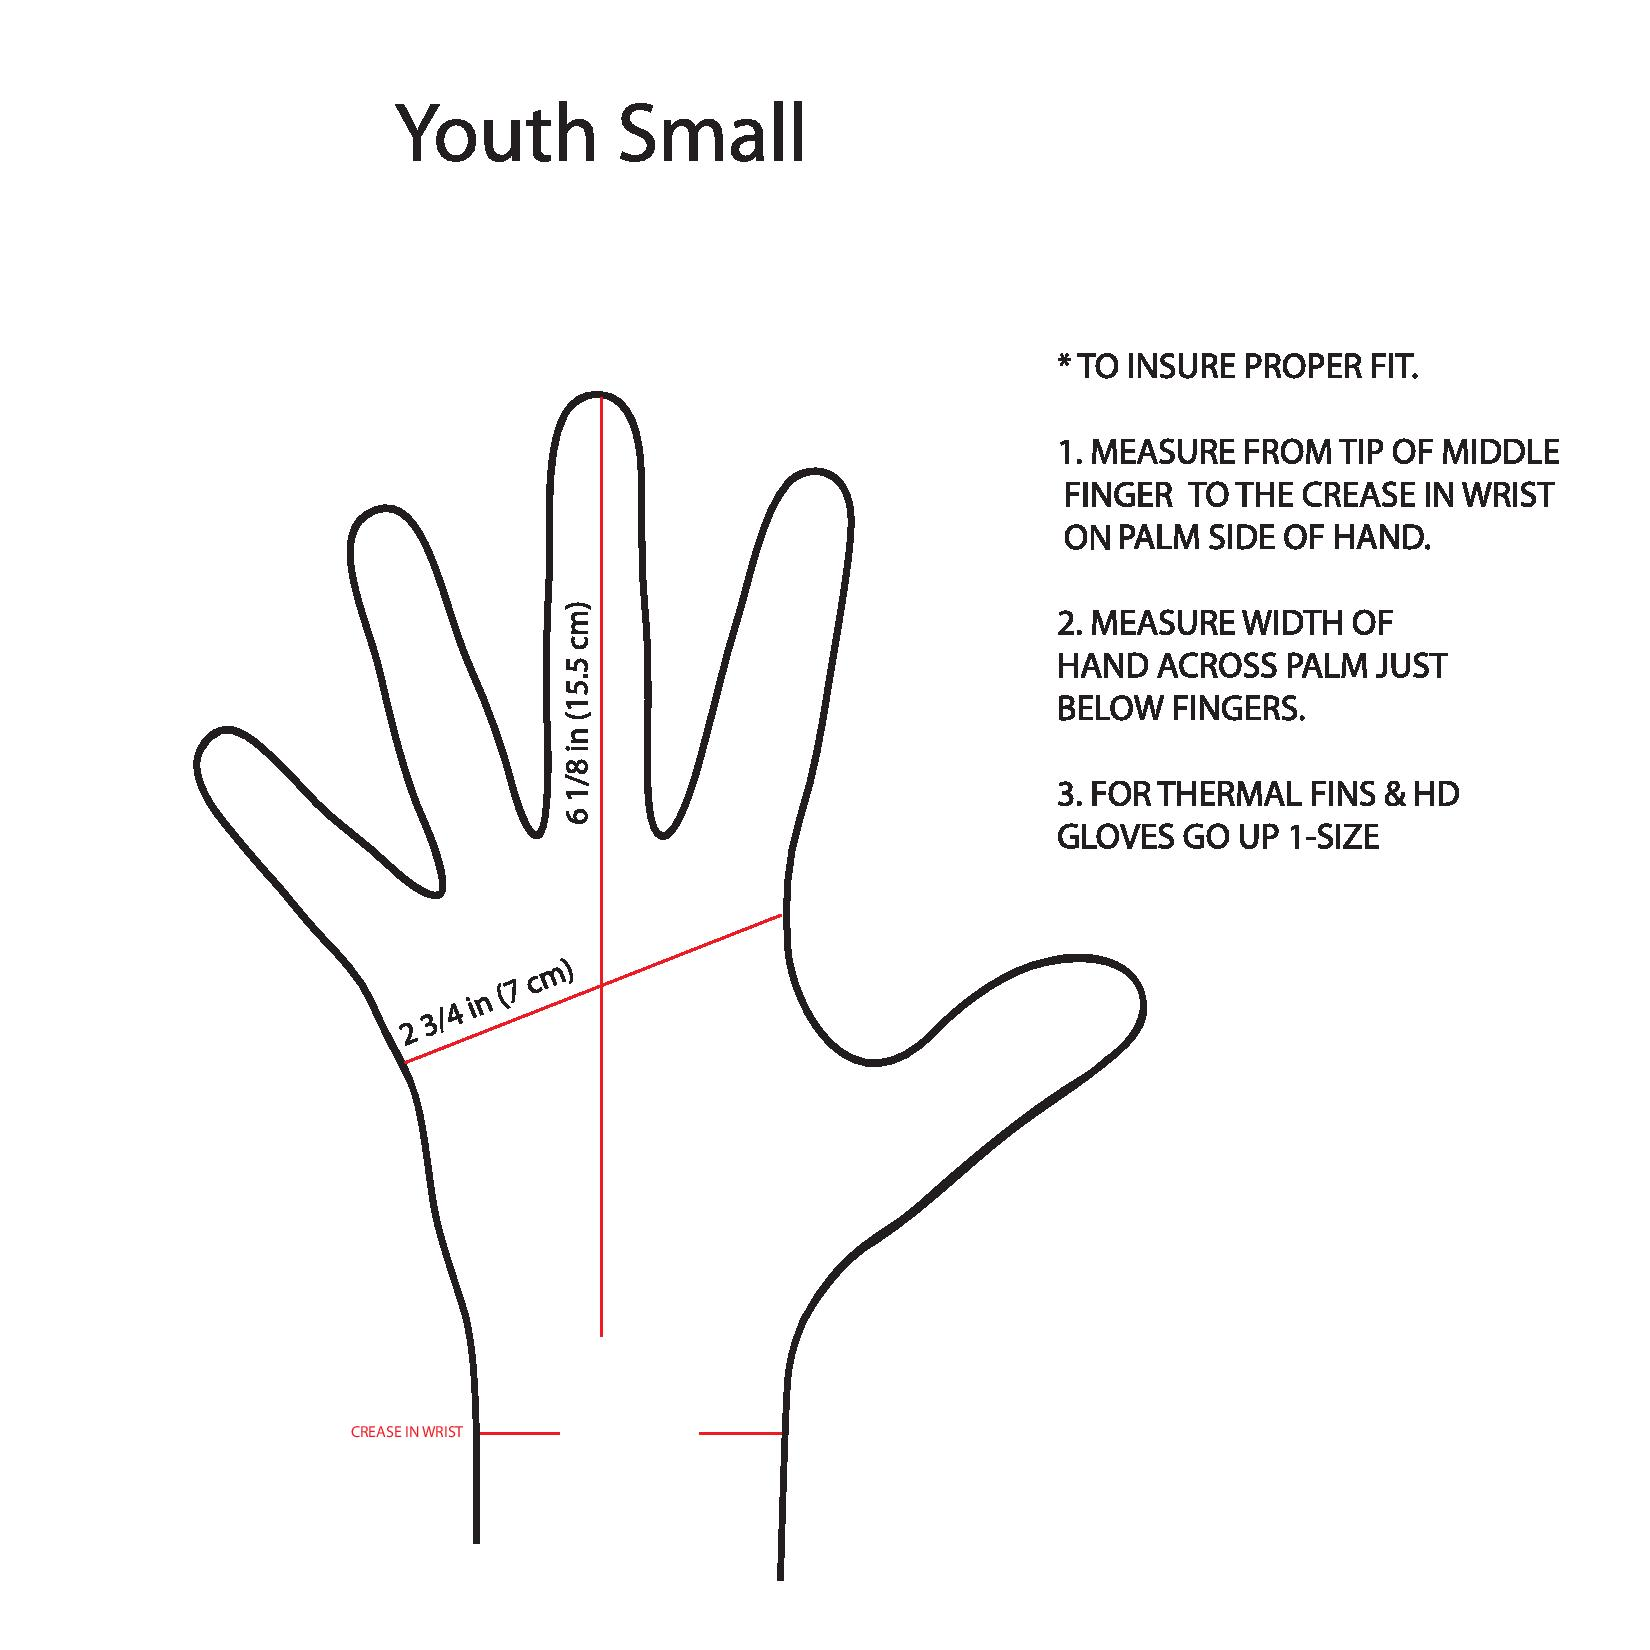 youth-sm-page-001-2-.jpg